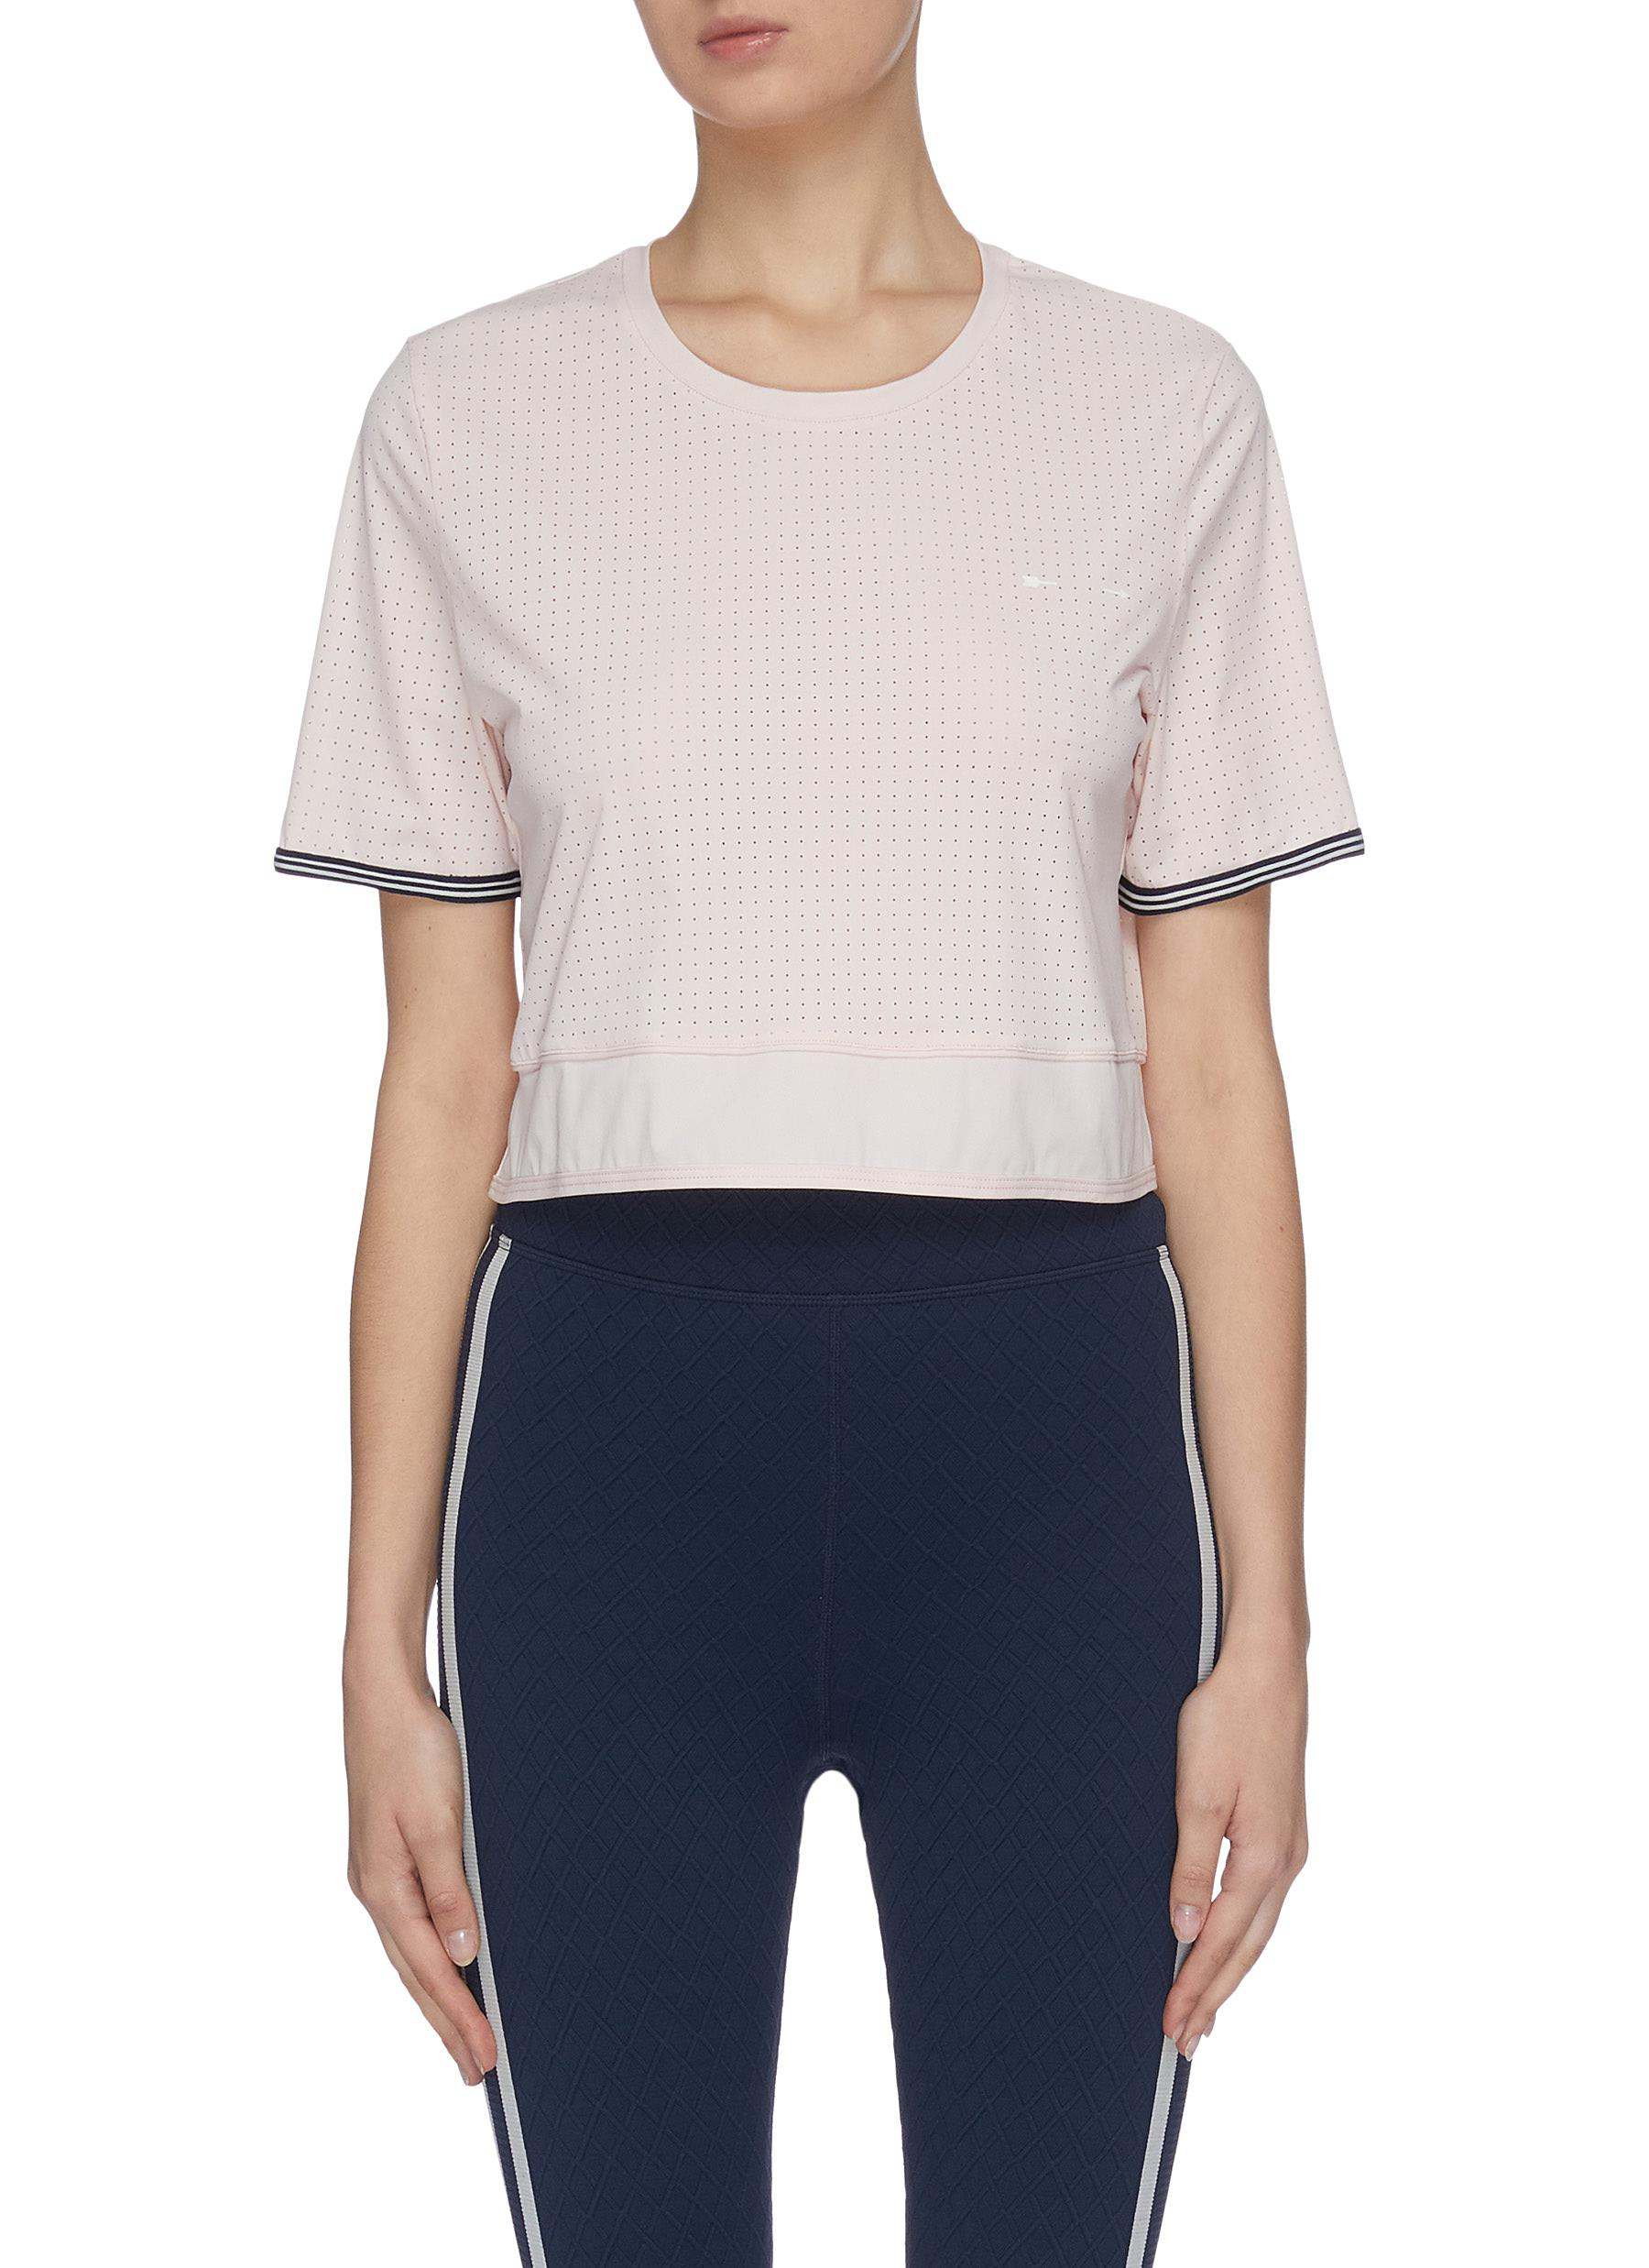 Buy The Upside Tops 'Anela' performance cropped top